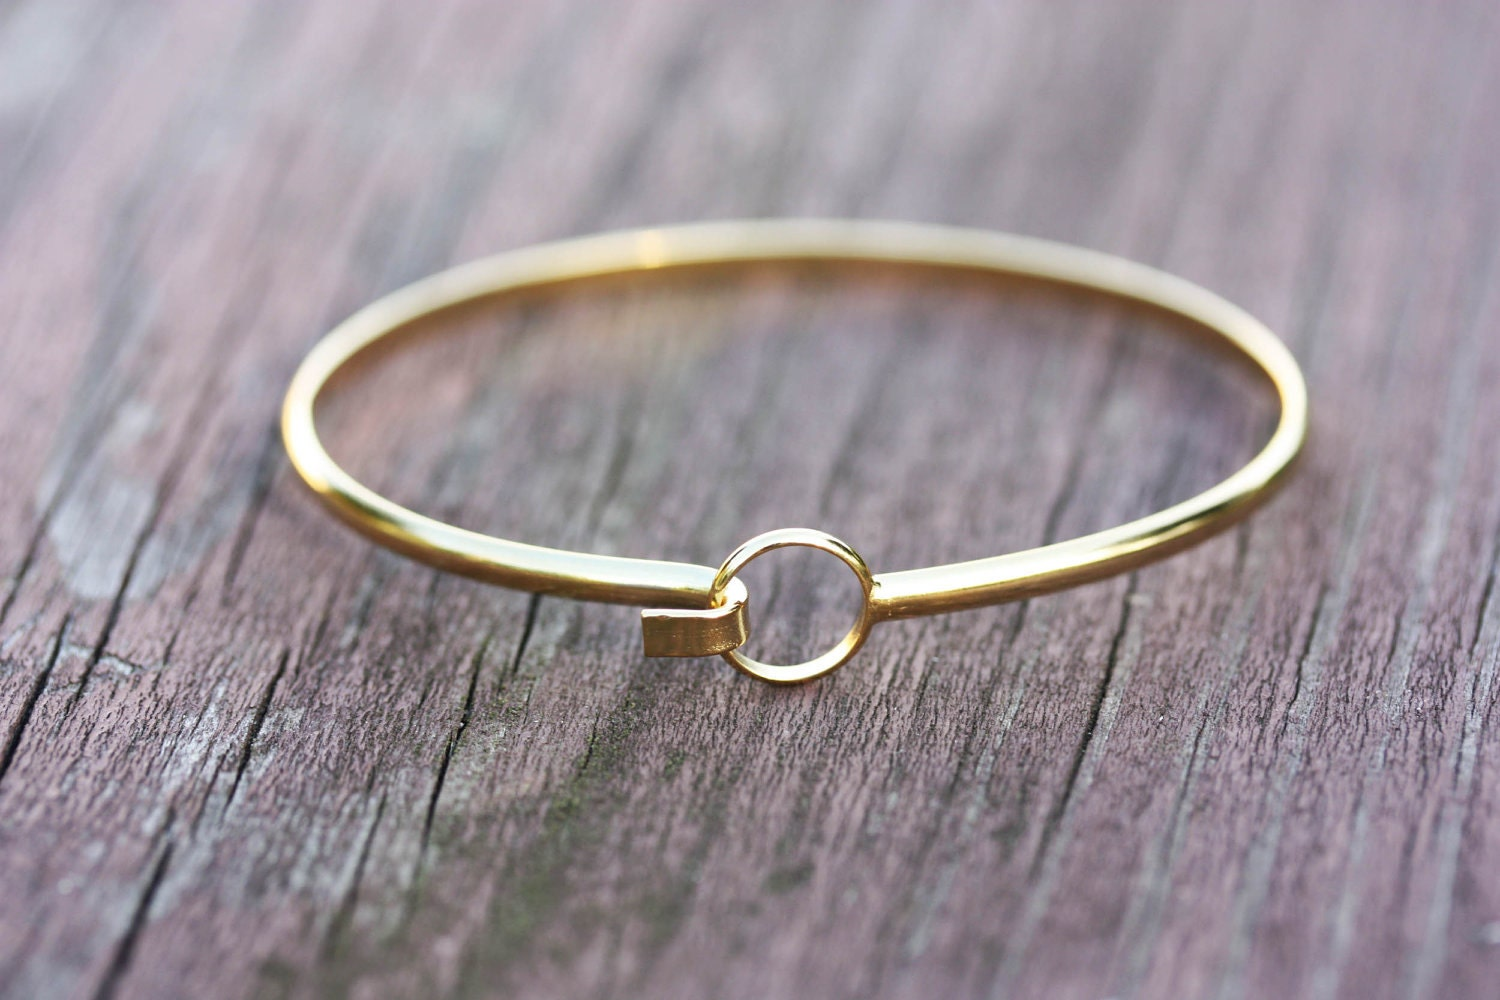 Gold Wire Bracelet Circle Hook. Hexagon Earrings. Alarm Watches. Top Diamond. 3 Carat Diamond Anniversary Band. Slightly Included Diamond. Yellow Gold Eternity Band. Alexis Bittar Necklace. Display Watches